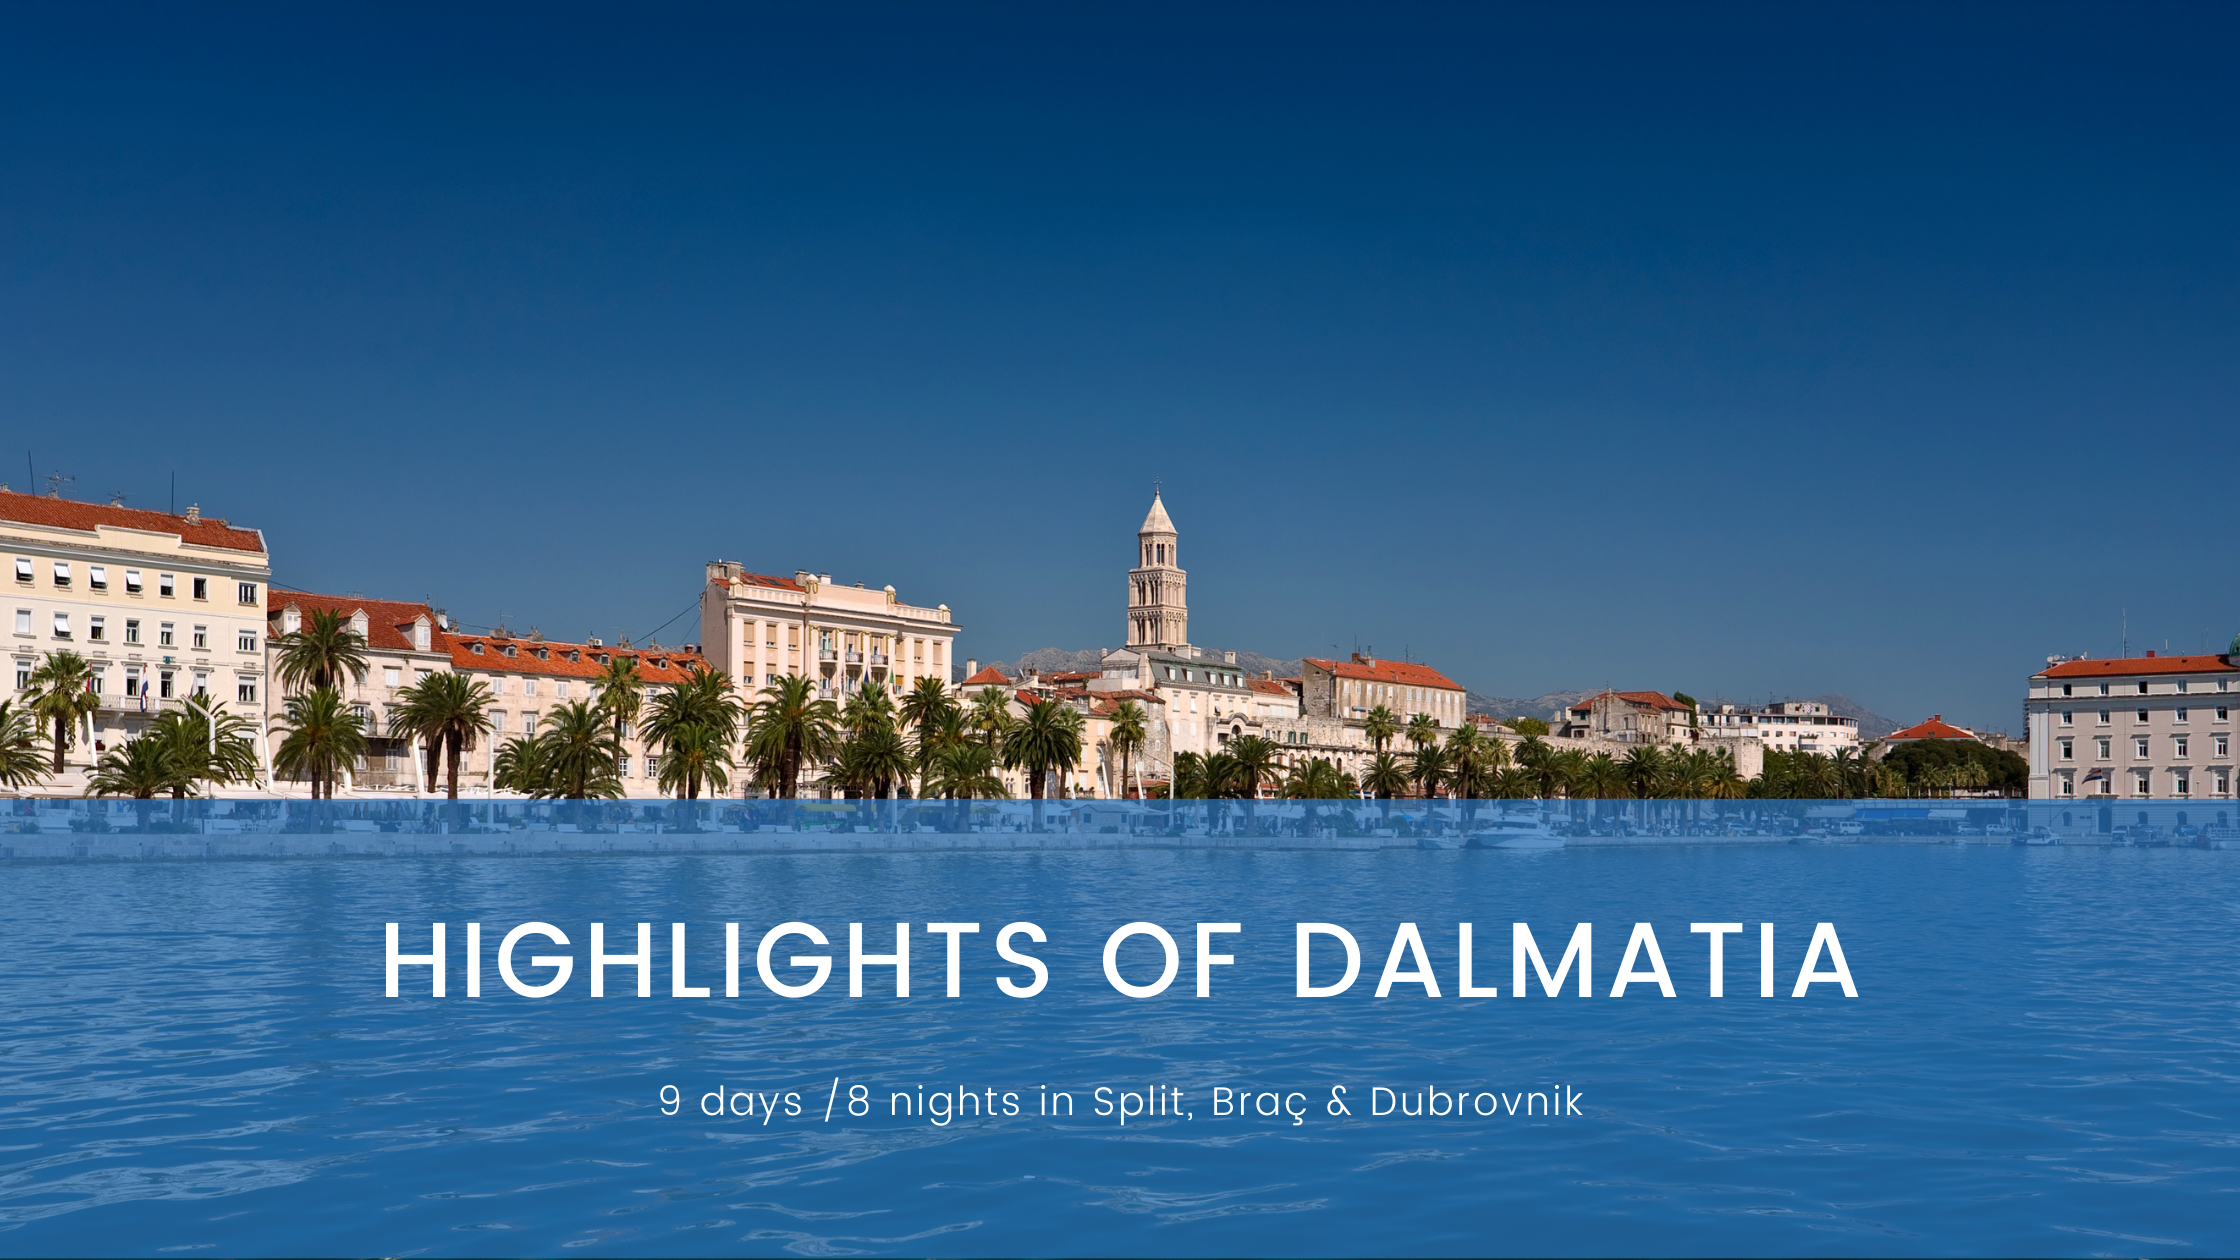 Highlights of Dalmatia